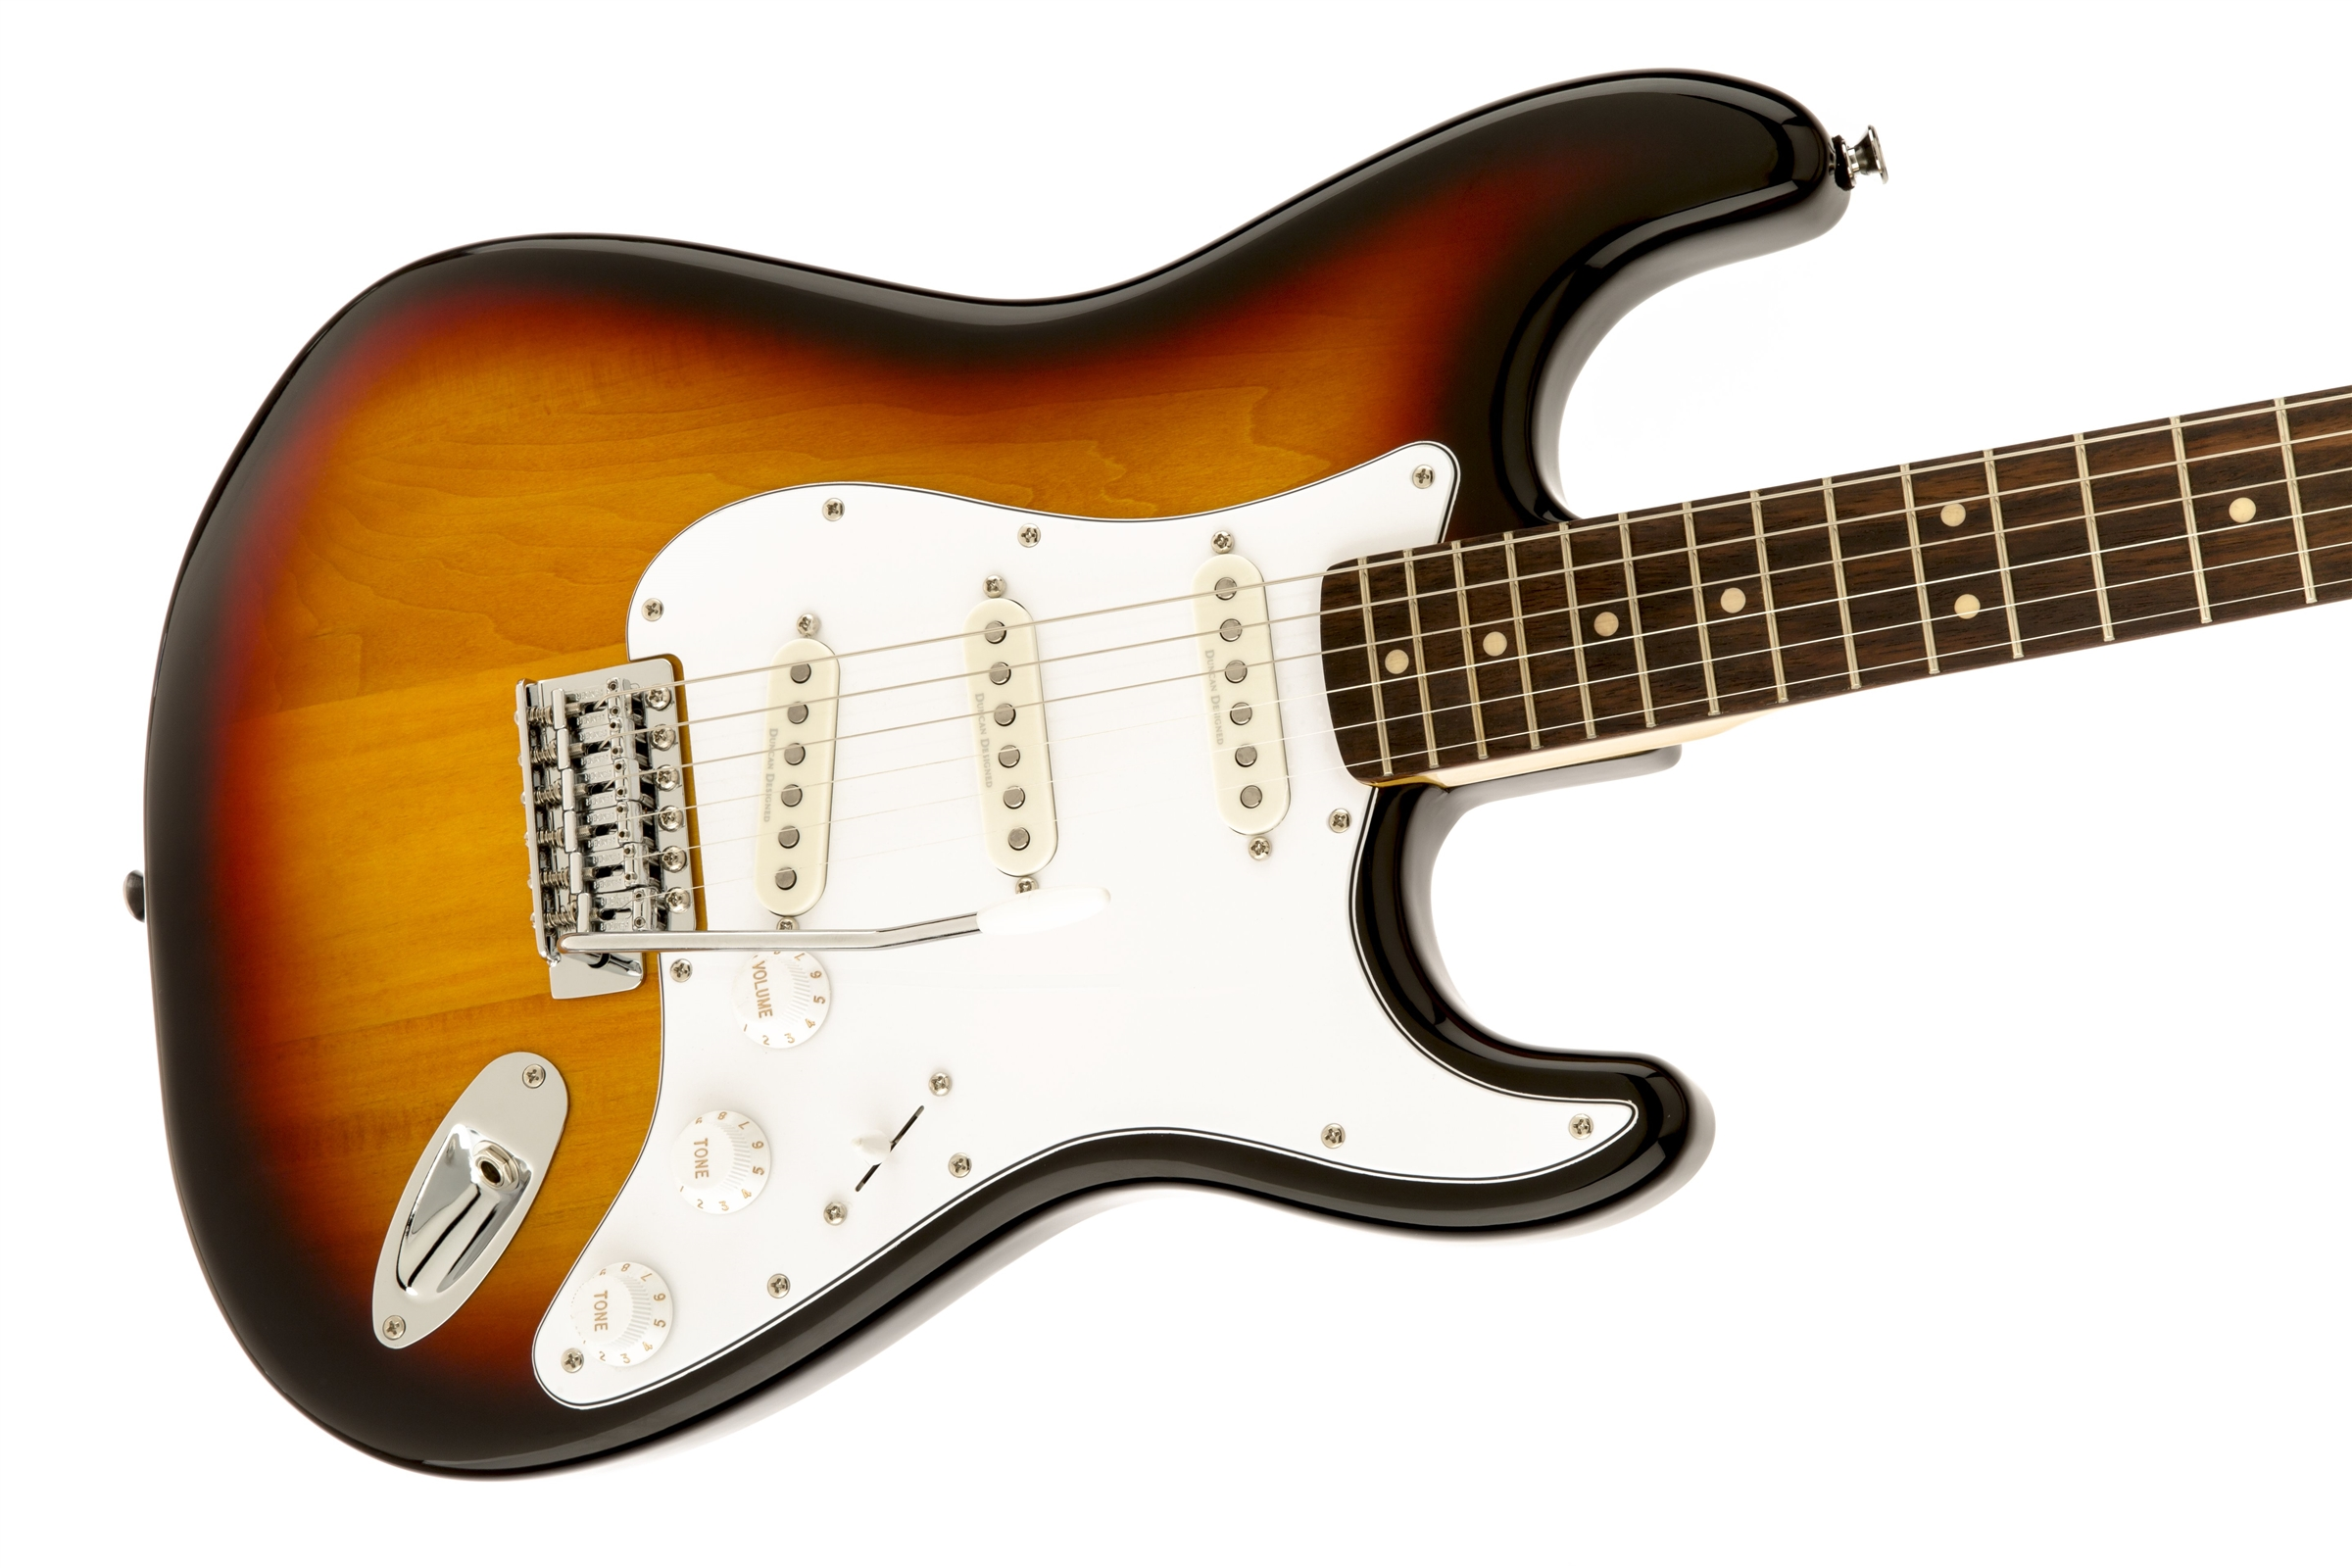 squier vintage modified stratocaster rosewood fingerboard 3 color sunburst squier electric. Black Bedroom Furniture Sets. Home Design Ideas